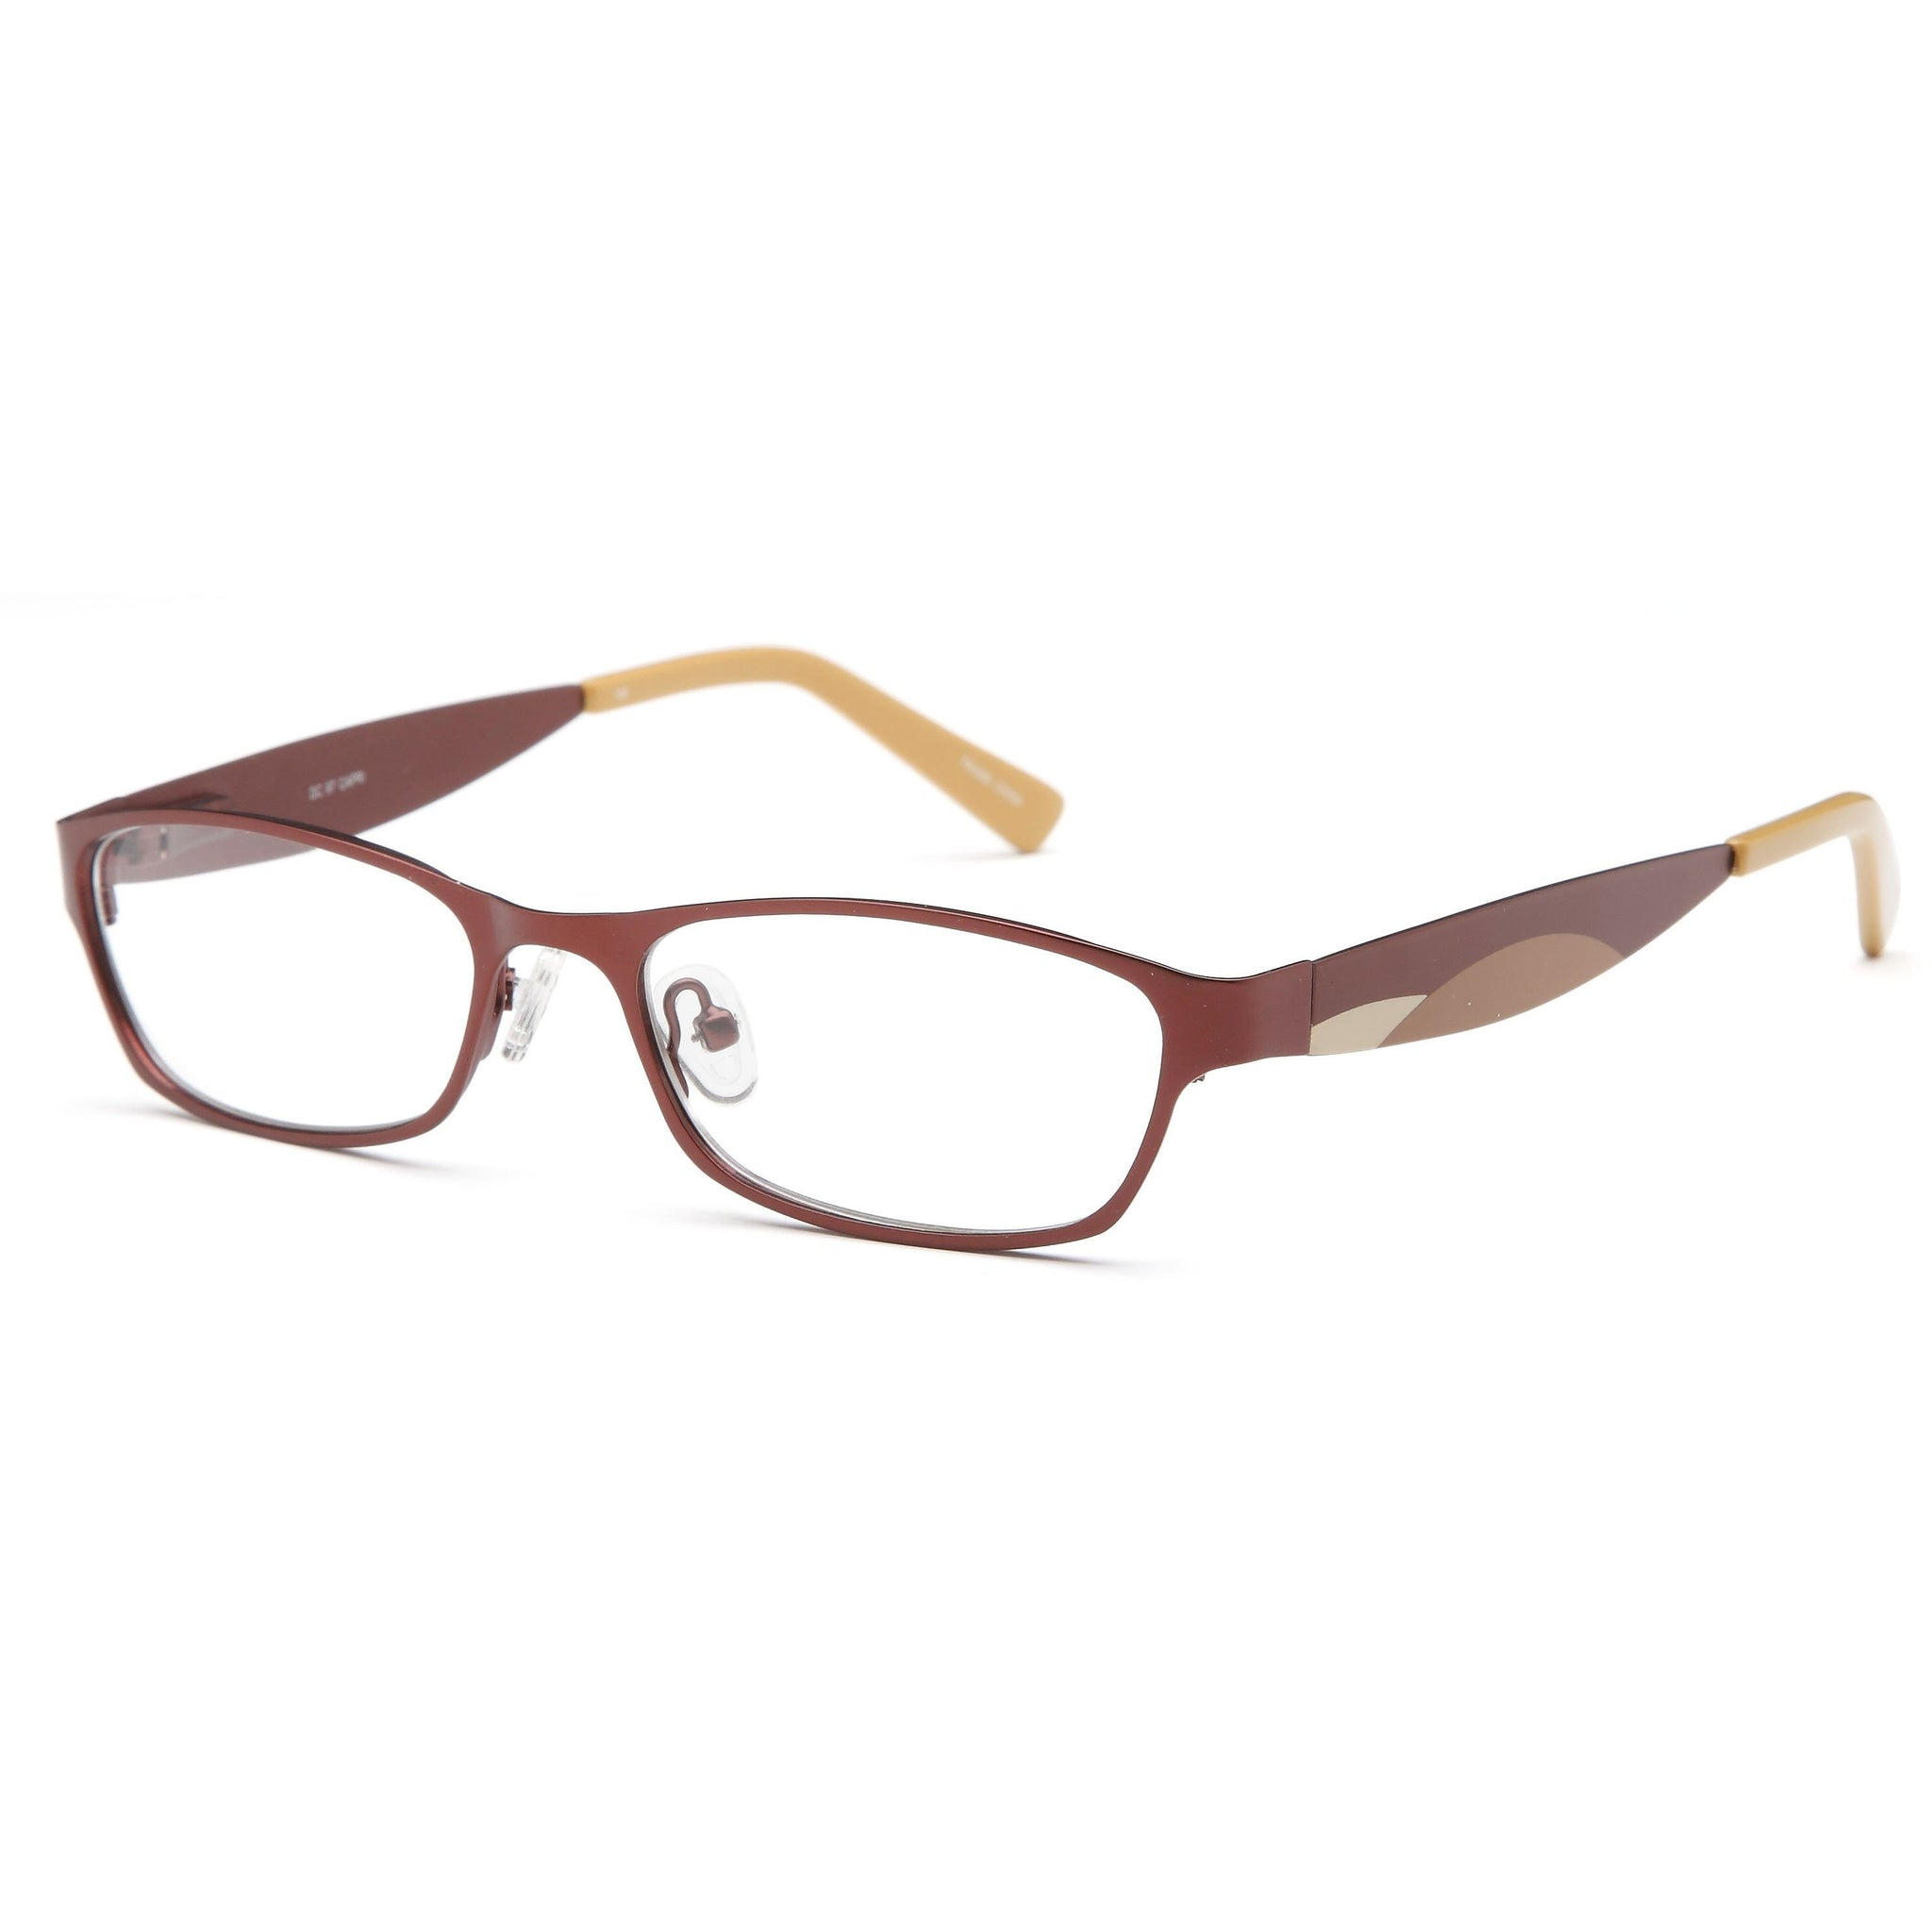 Leonardo Prescription Glasses DC 97 Eyeglasses Frame